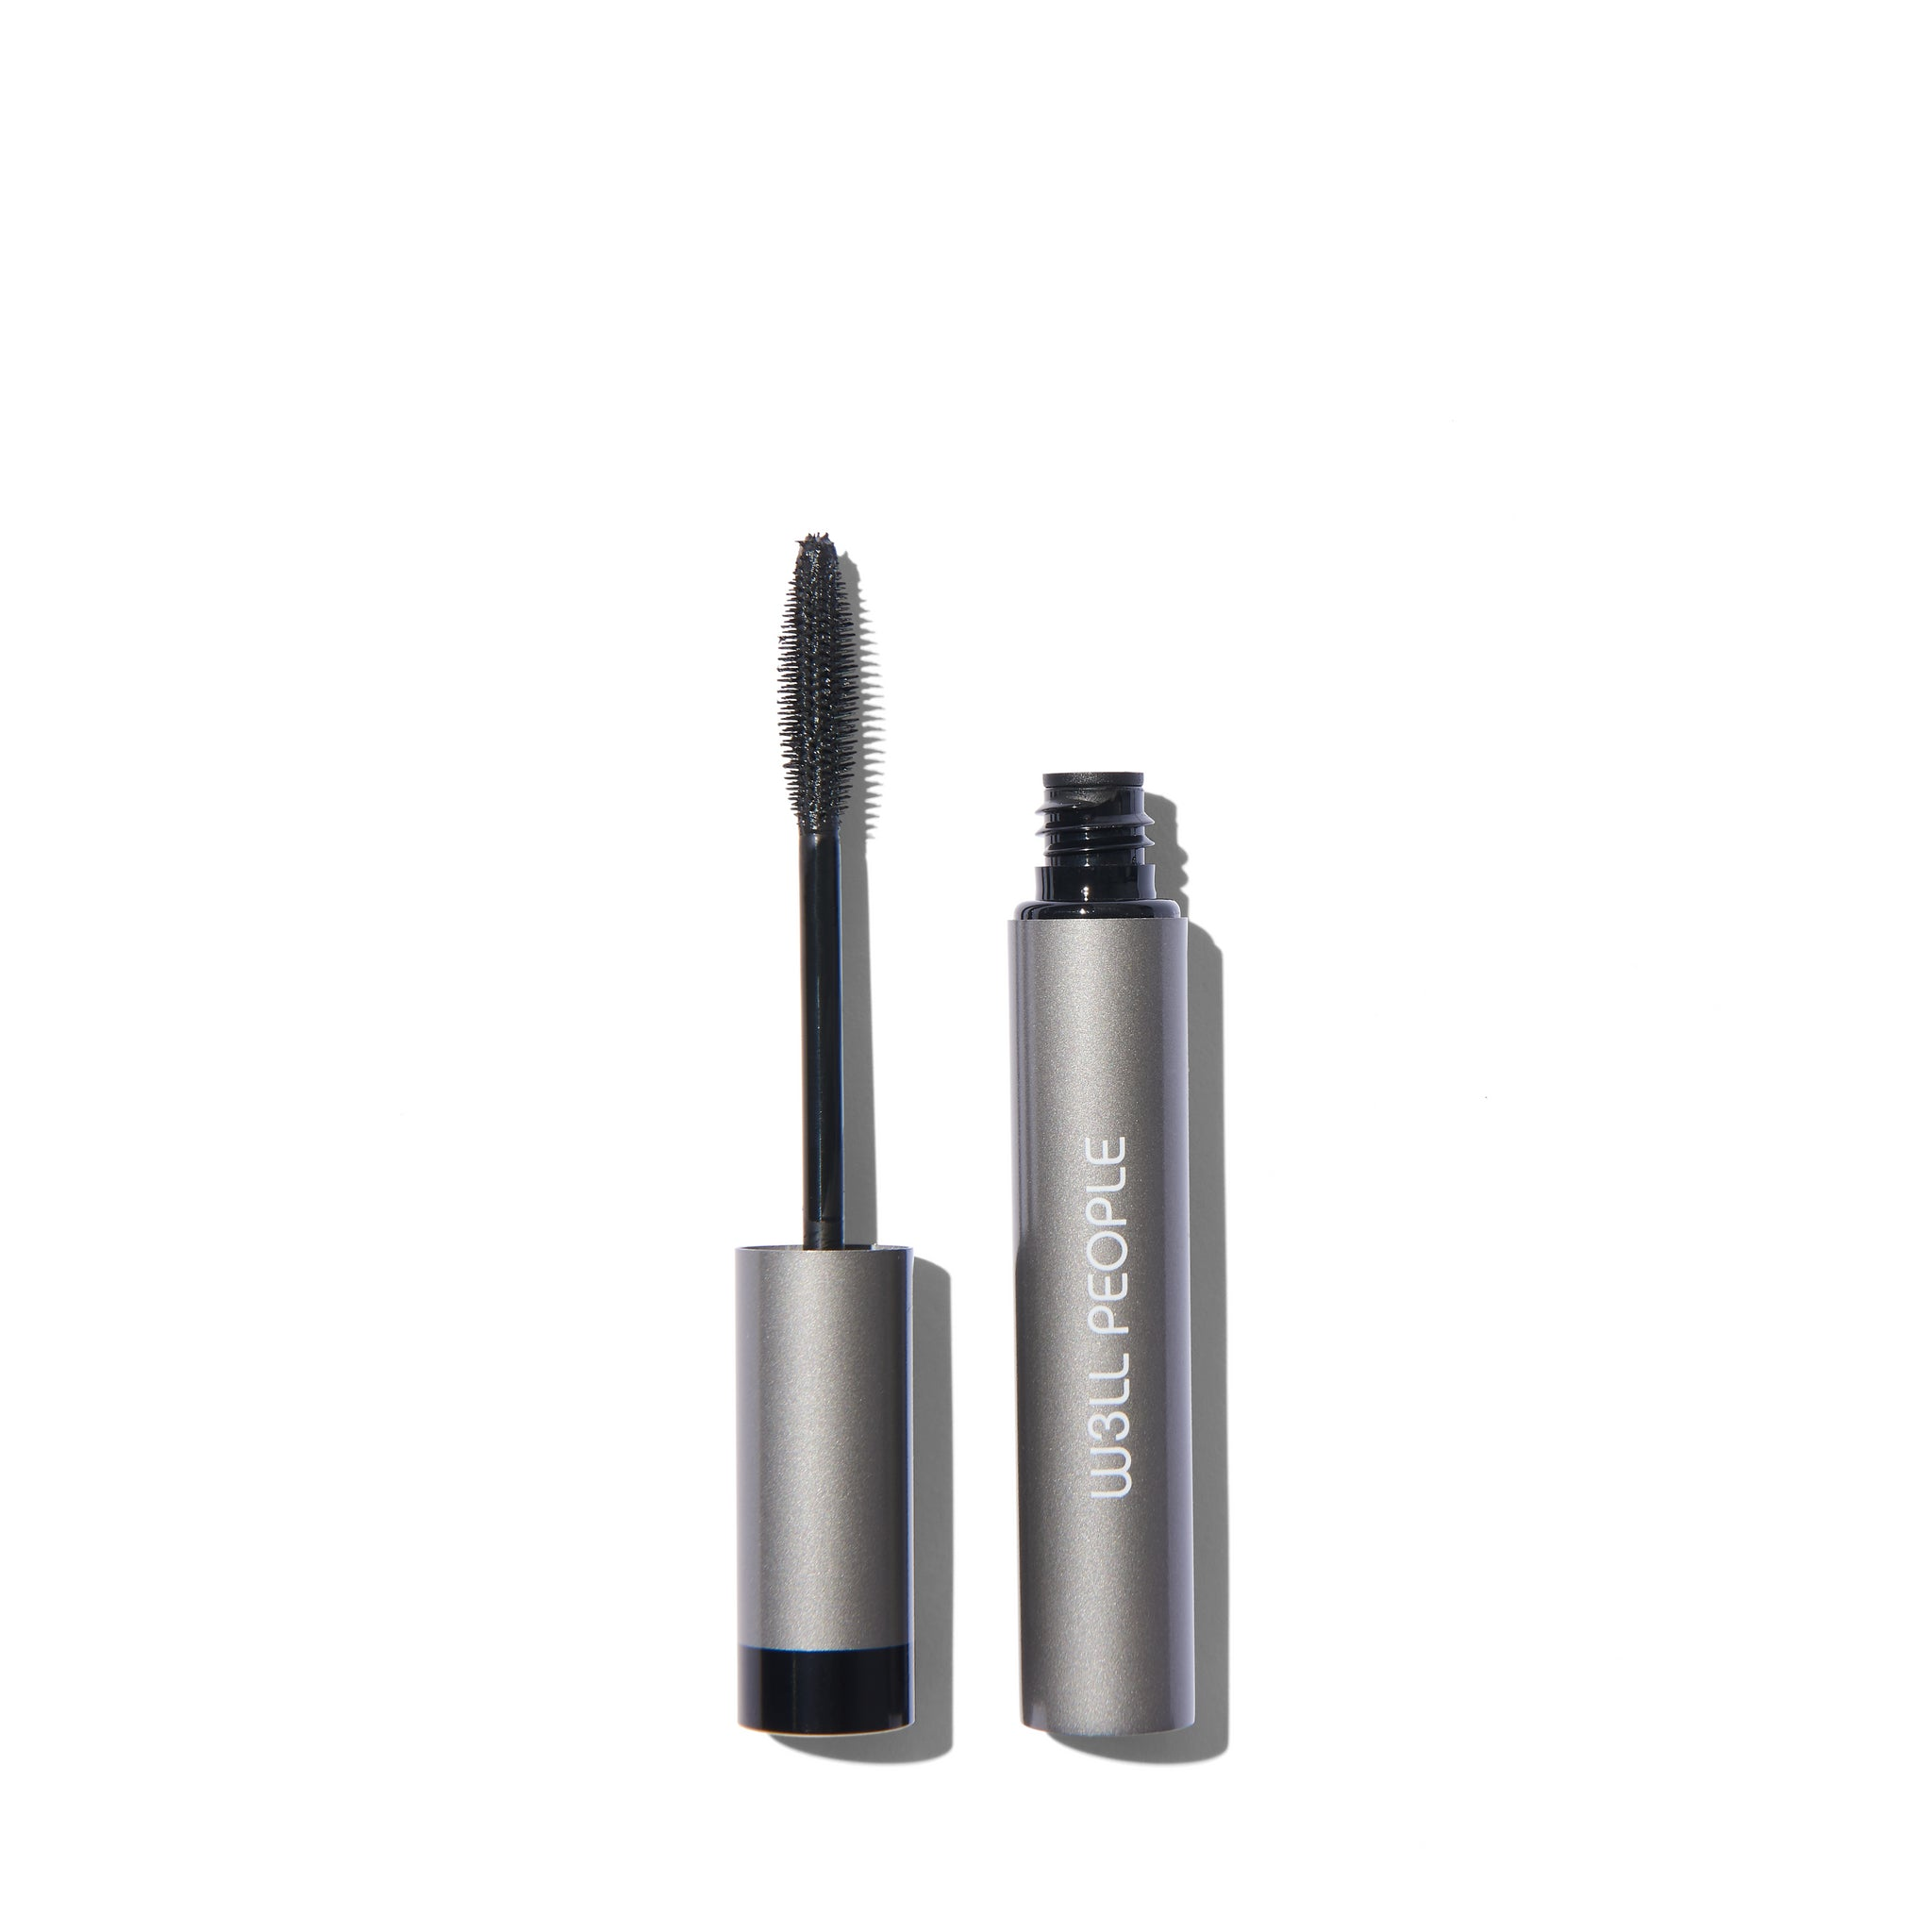 857900003491 - W3LL PEOPLE Expressionist Mascara